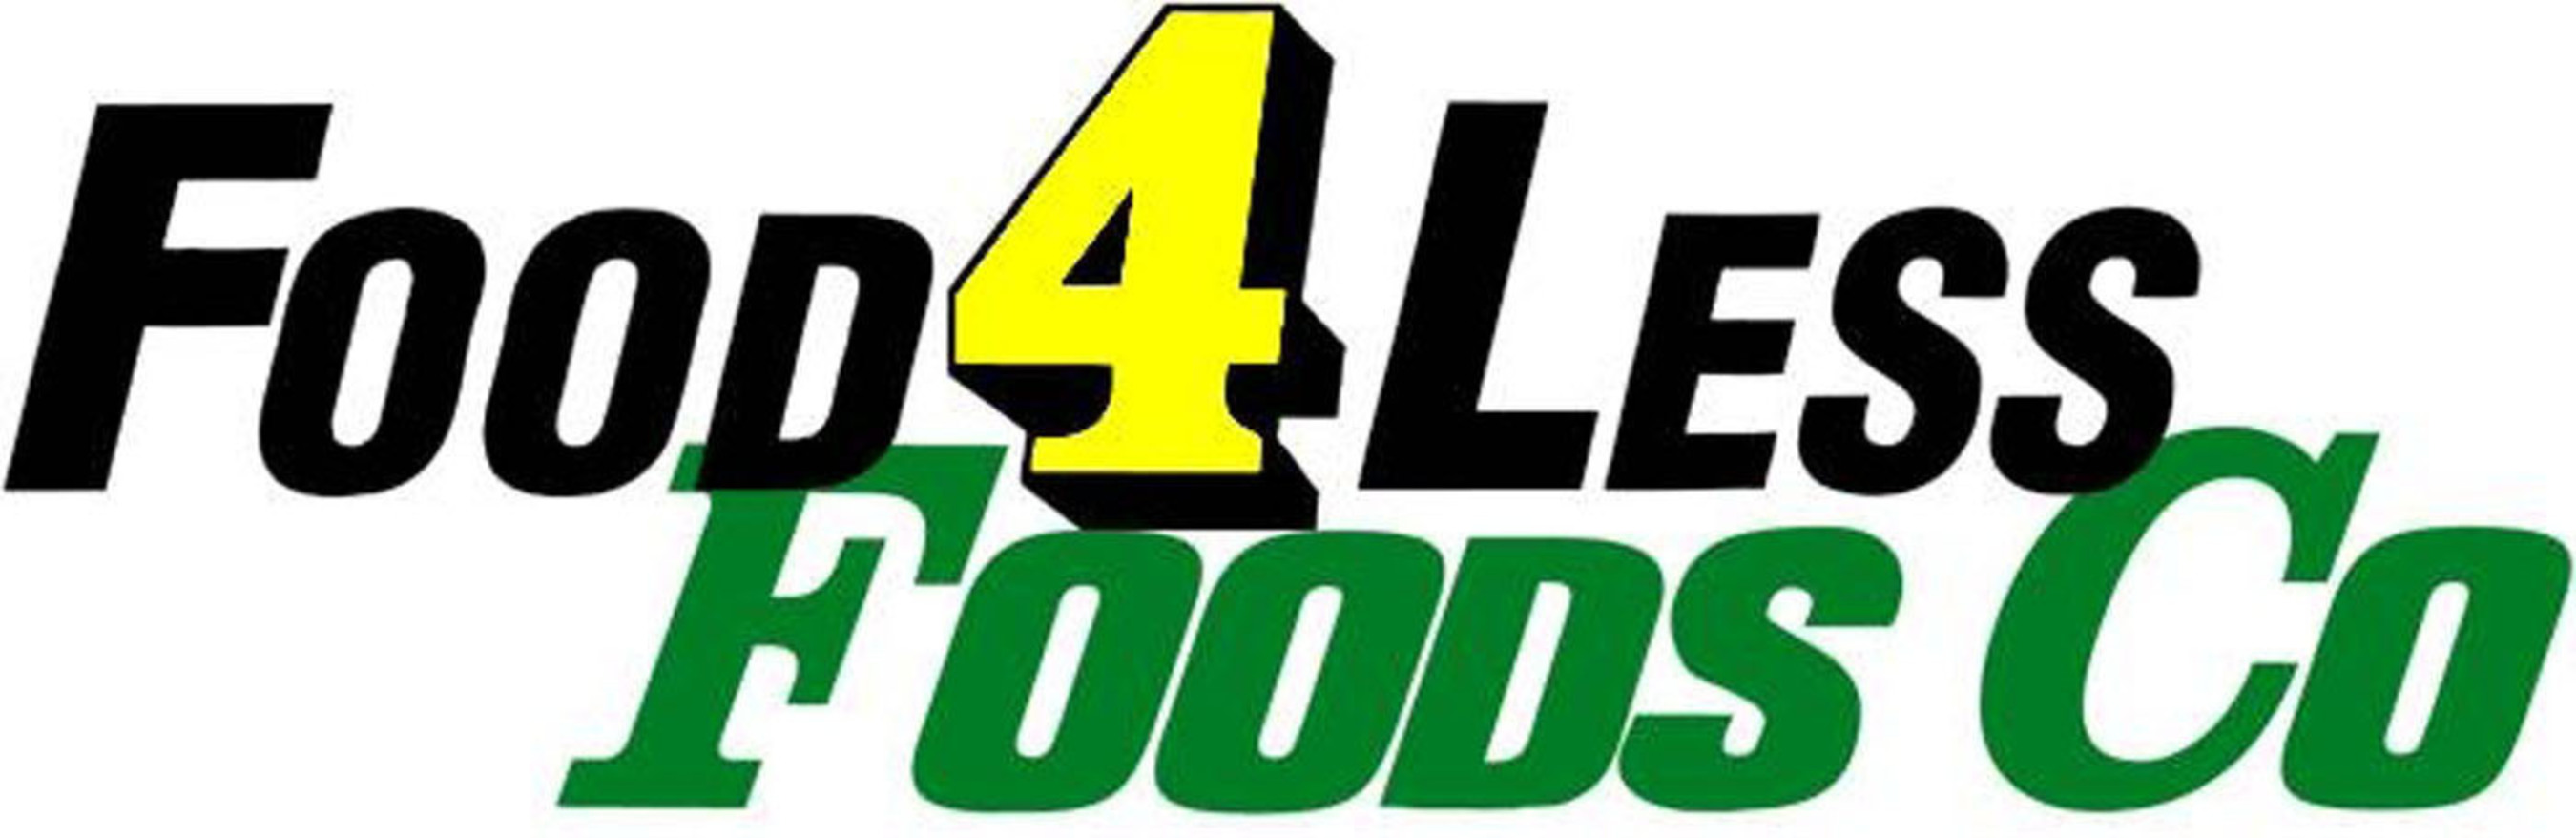 Food 4 Less/Foods Co - The Prices Bring You In, the Quality Brings You Back. (PRNewsFoto/Food 4 Less/Foods Co)